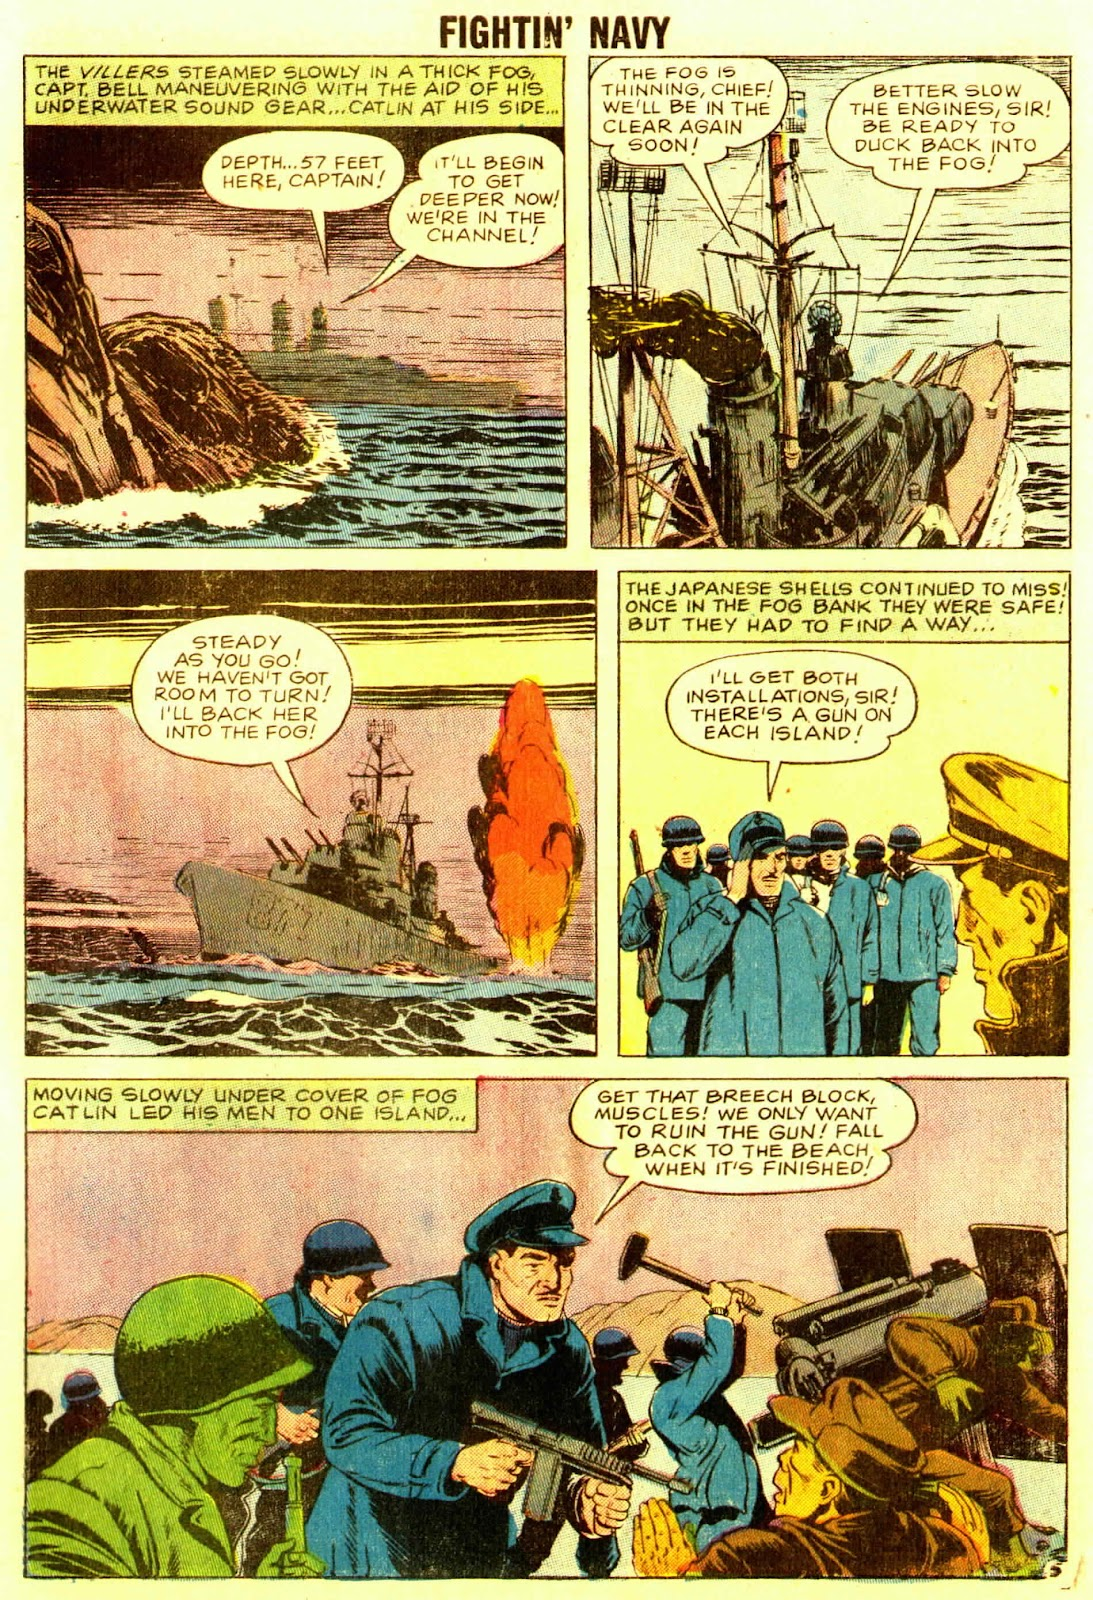 Read online Fightin' Navy comic -  Issue #83 - 71